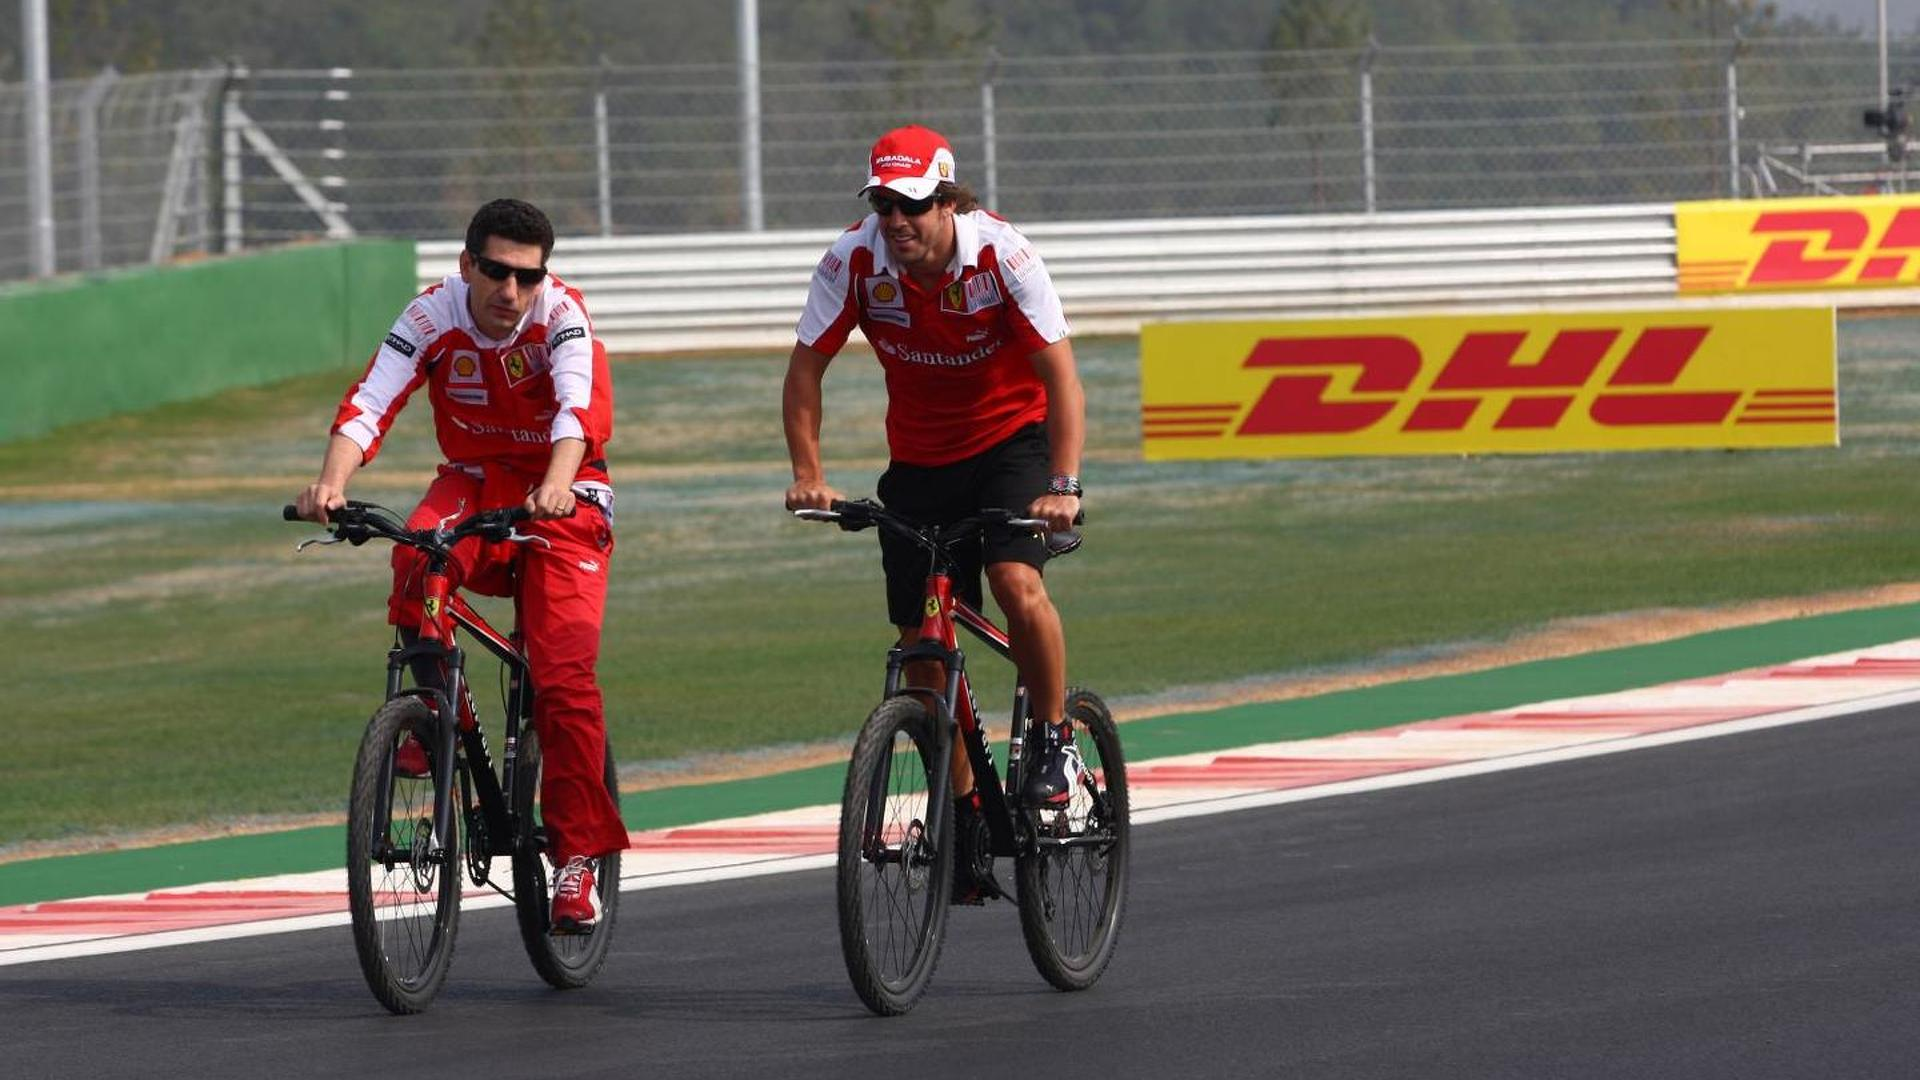 F1 career turmoil stopped Alonso's cycling dream